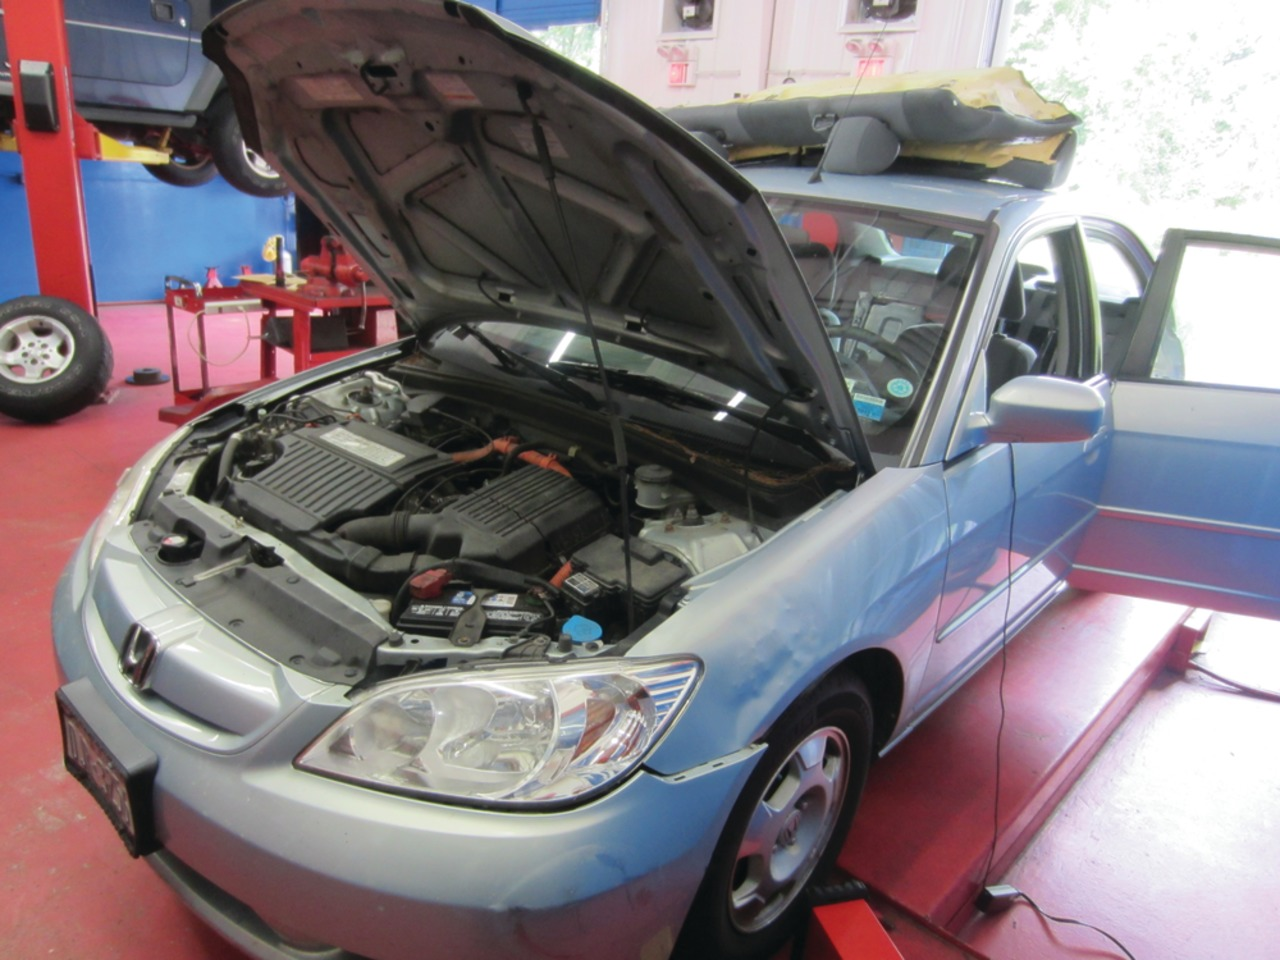 Honda Hybrid10894635 This 2005 Civic Hybrid Has An Ima Light